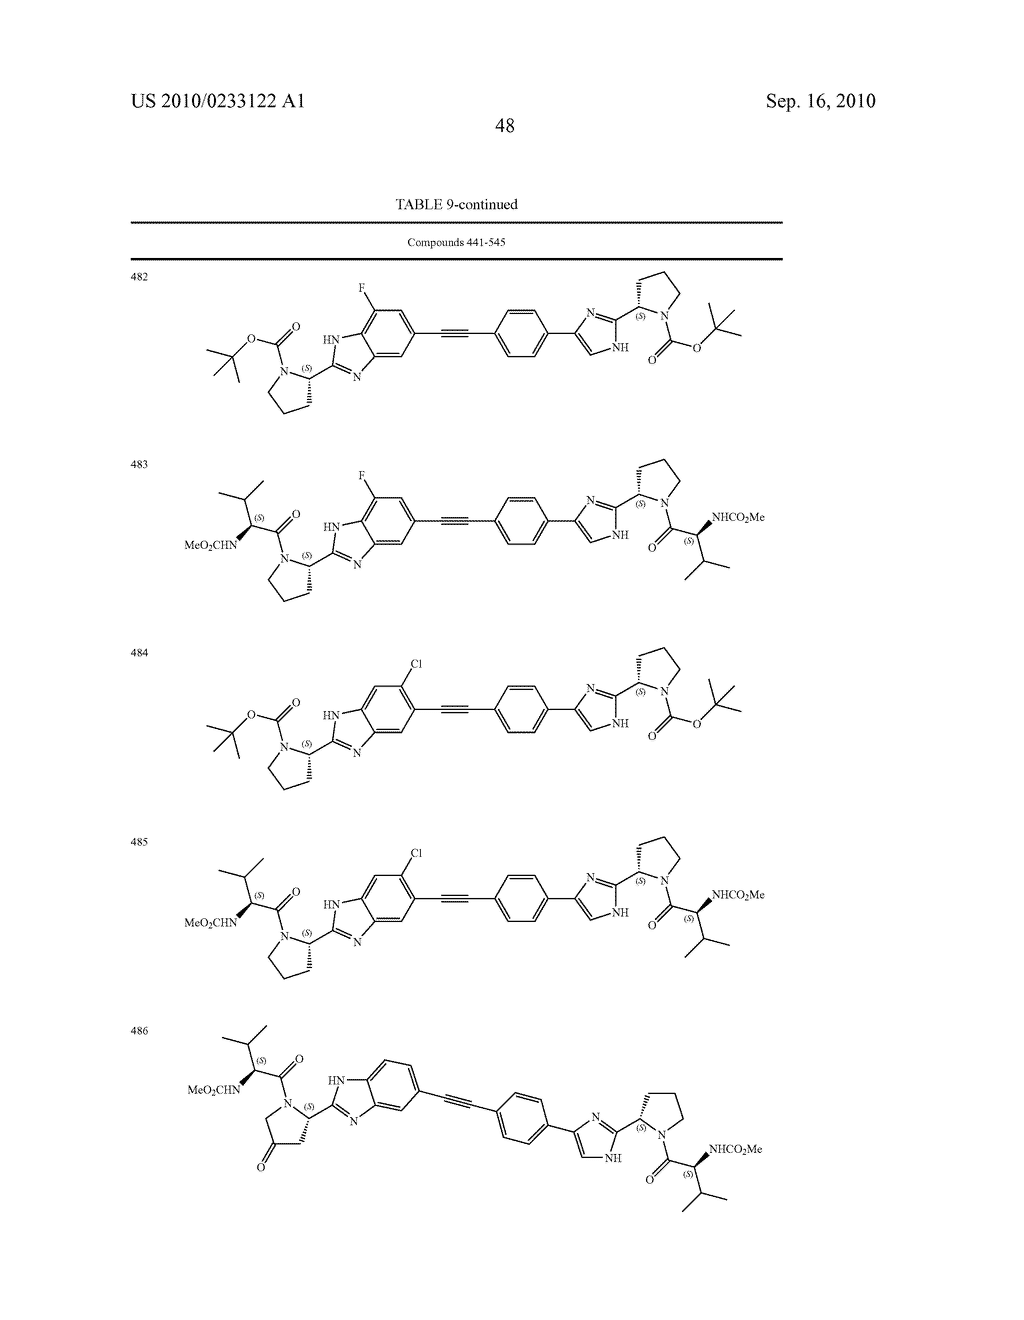 NOVEL BENZIMIDAZOLE DERIVATIVES - diagram, schematic, and image 49